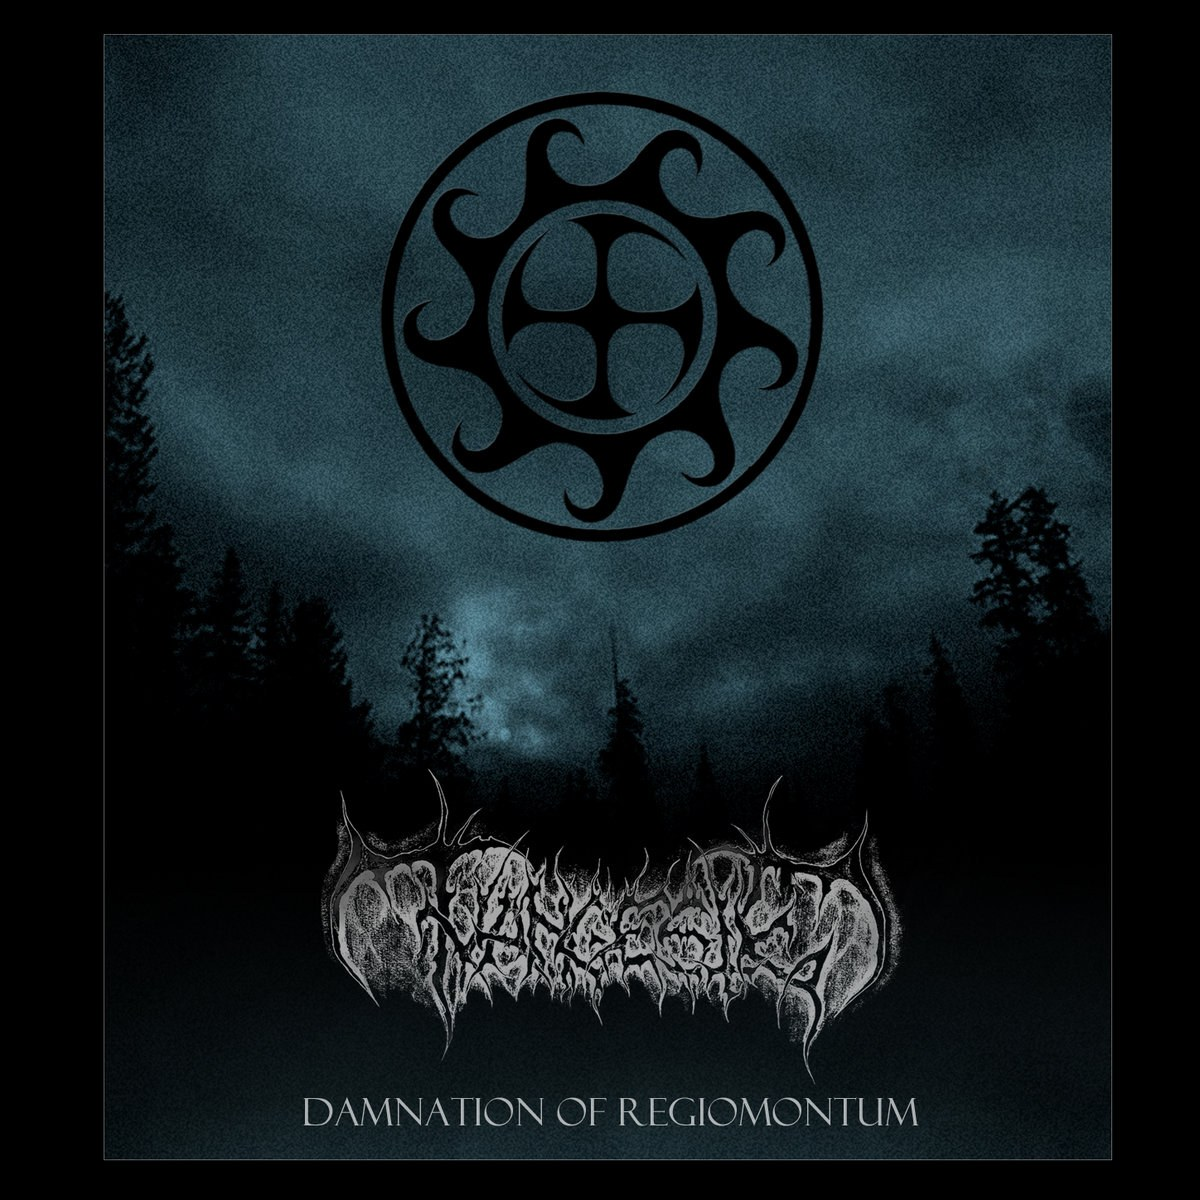 Review for Tvangeste - Damnation of Regiomontum